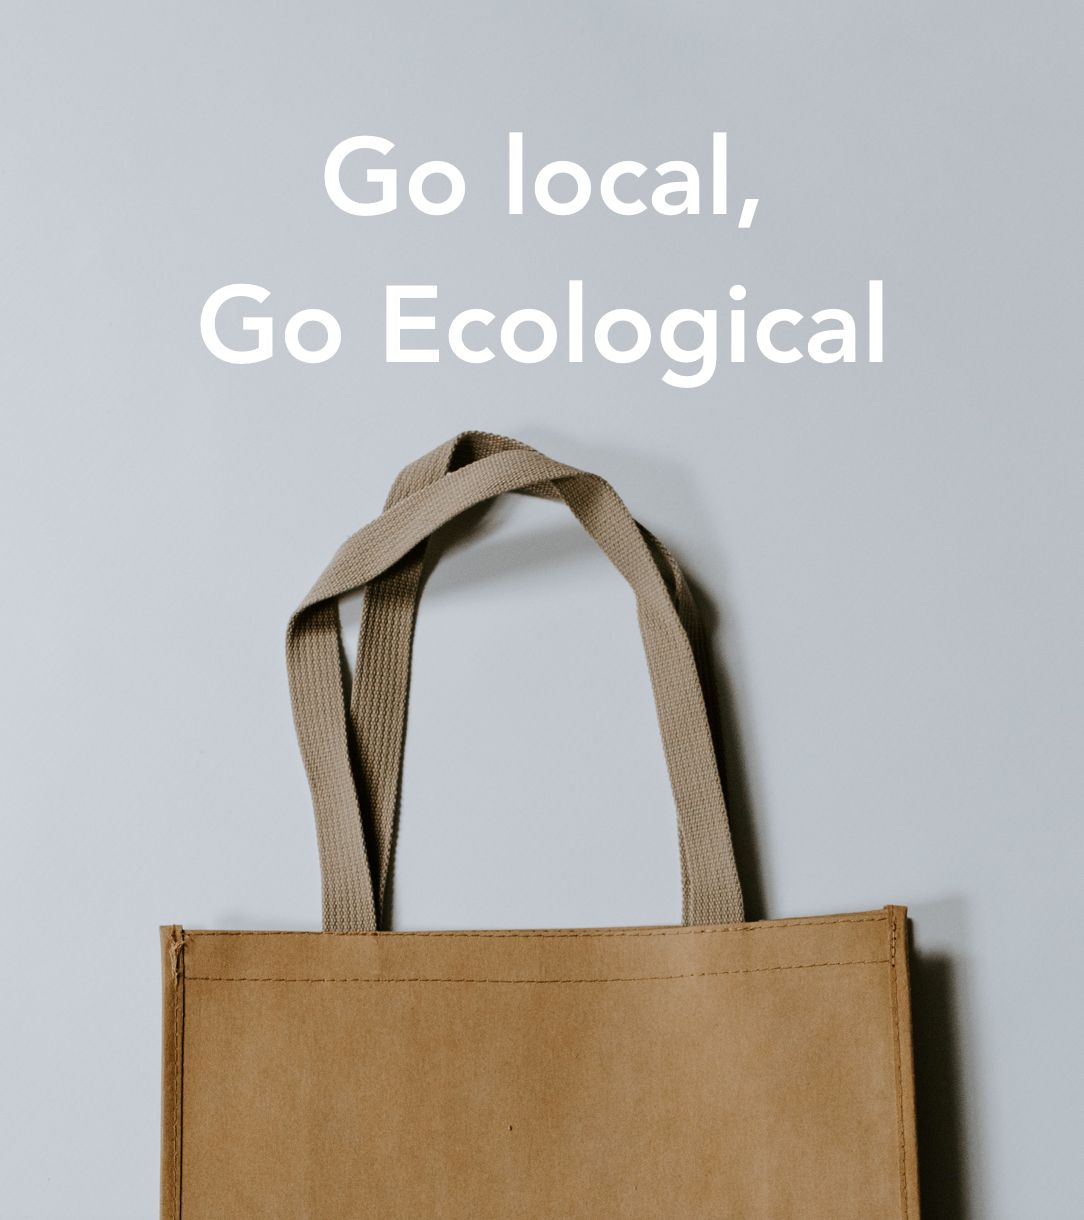 Go Local, Go Ecological - Why local shopping is also ecological shopping